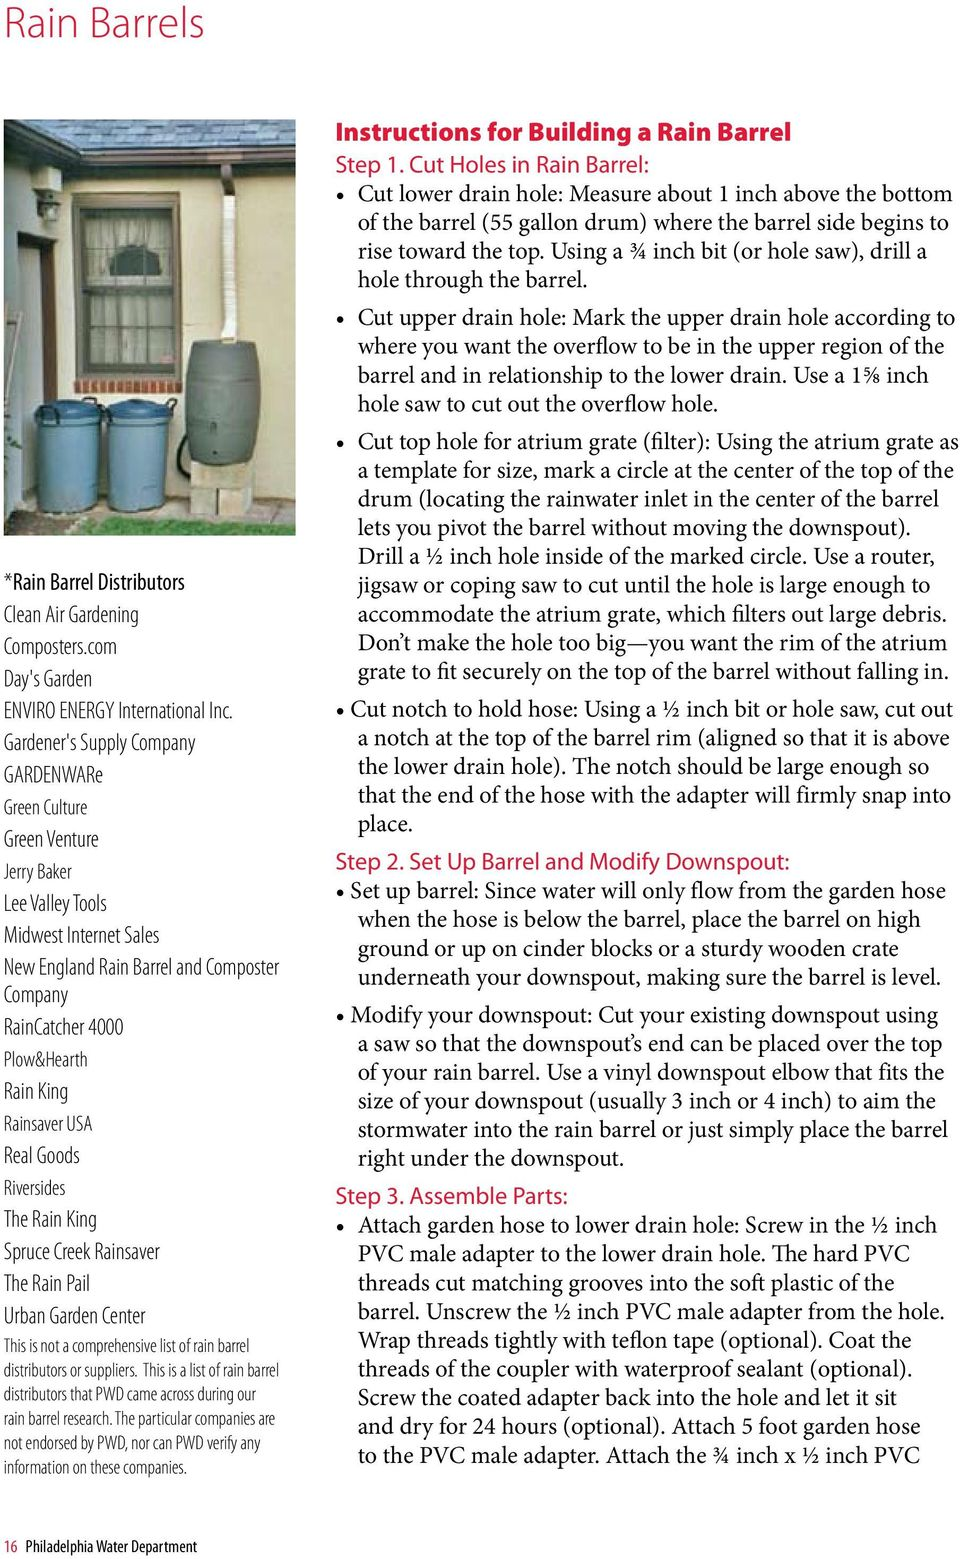 King Rainsaver USA Real Goods Riversides The Rain King Spruce Creek Rainsaver The Rain Pail Urban Garden Center This is not a comprehensive list of rain barrel distributors or suppliers.